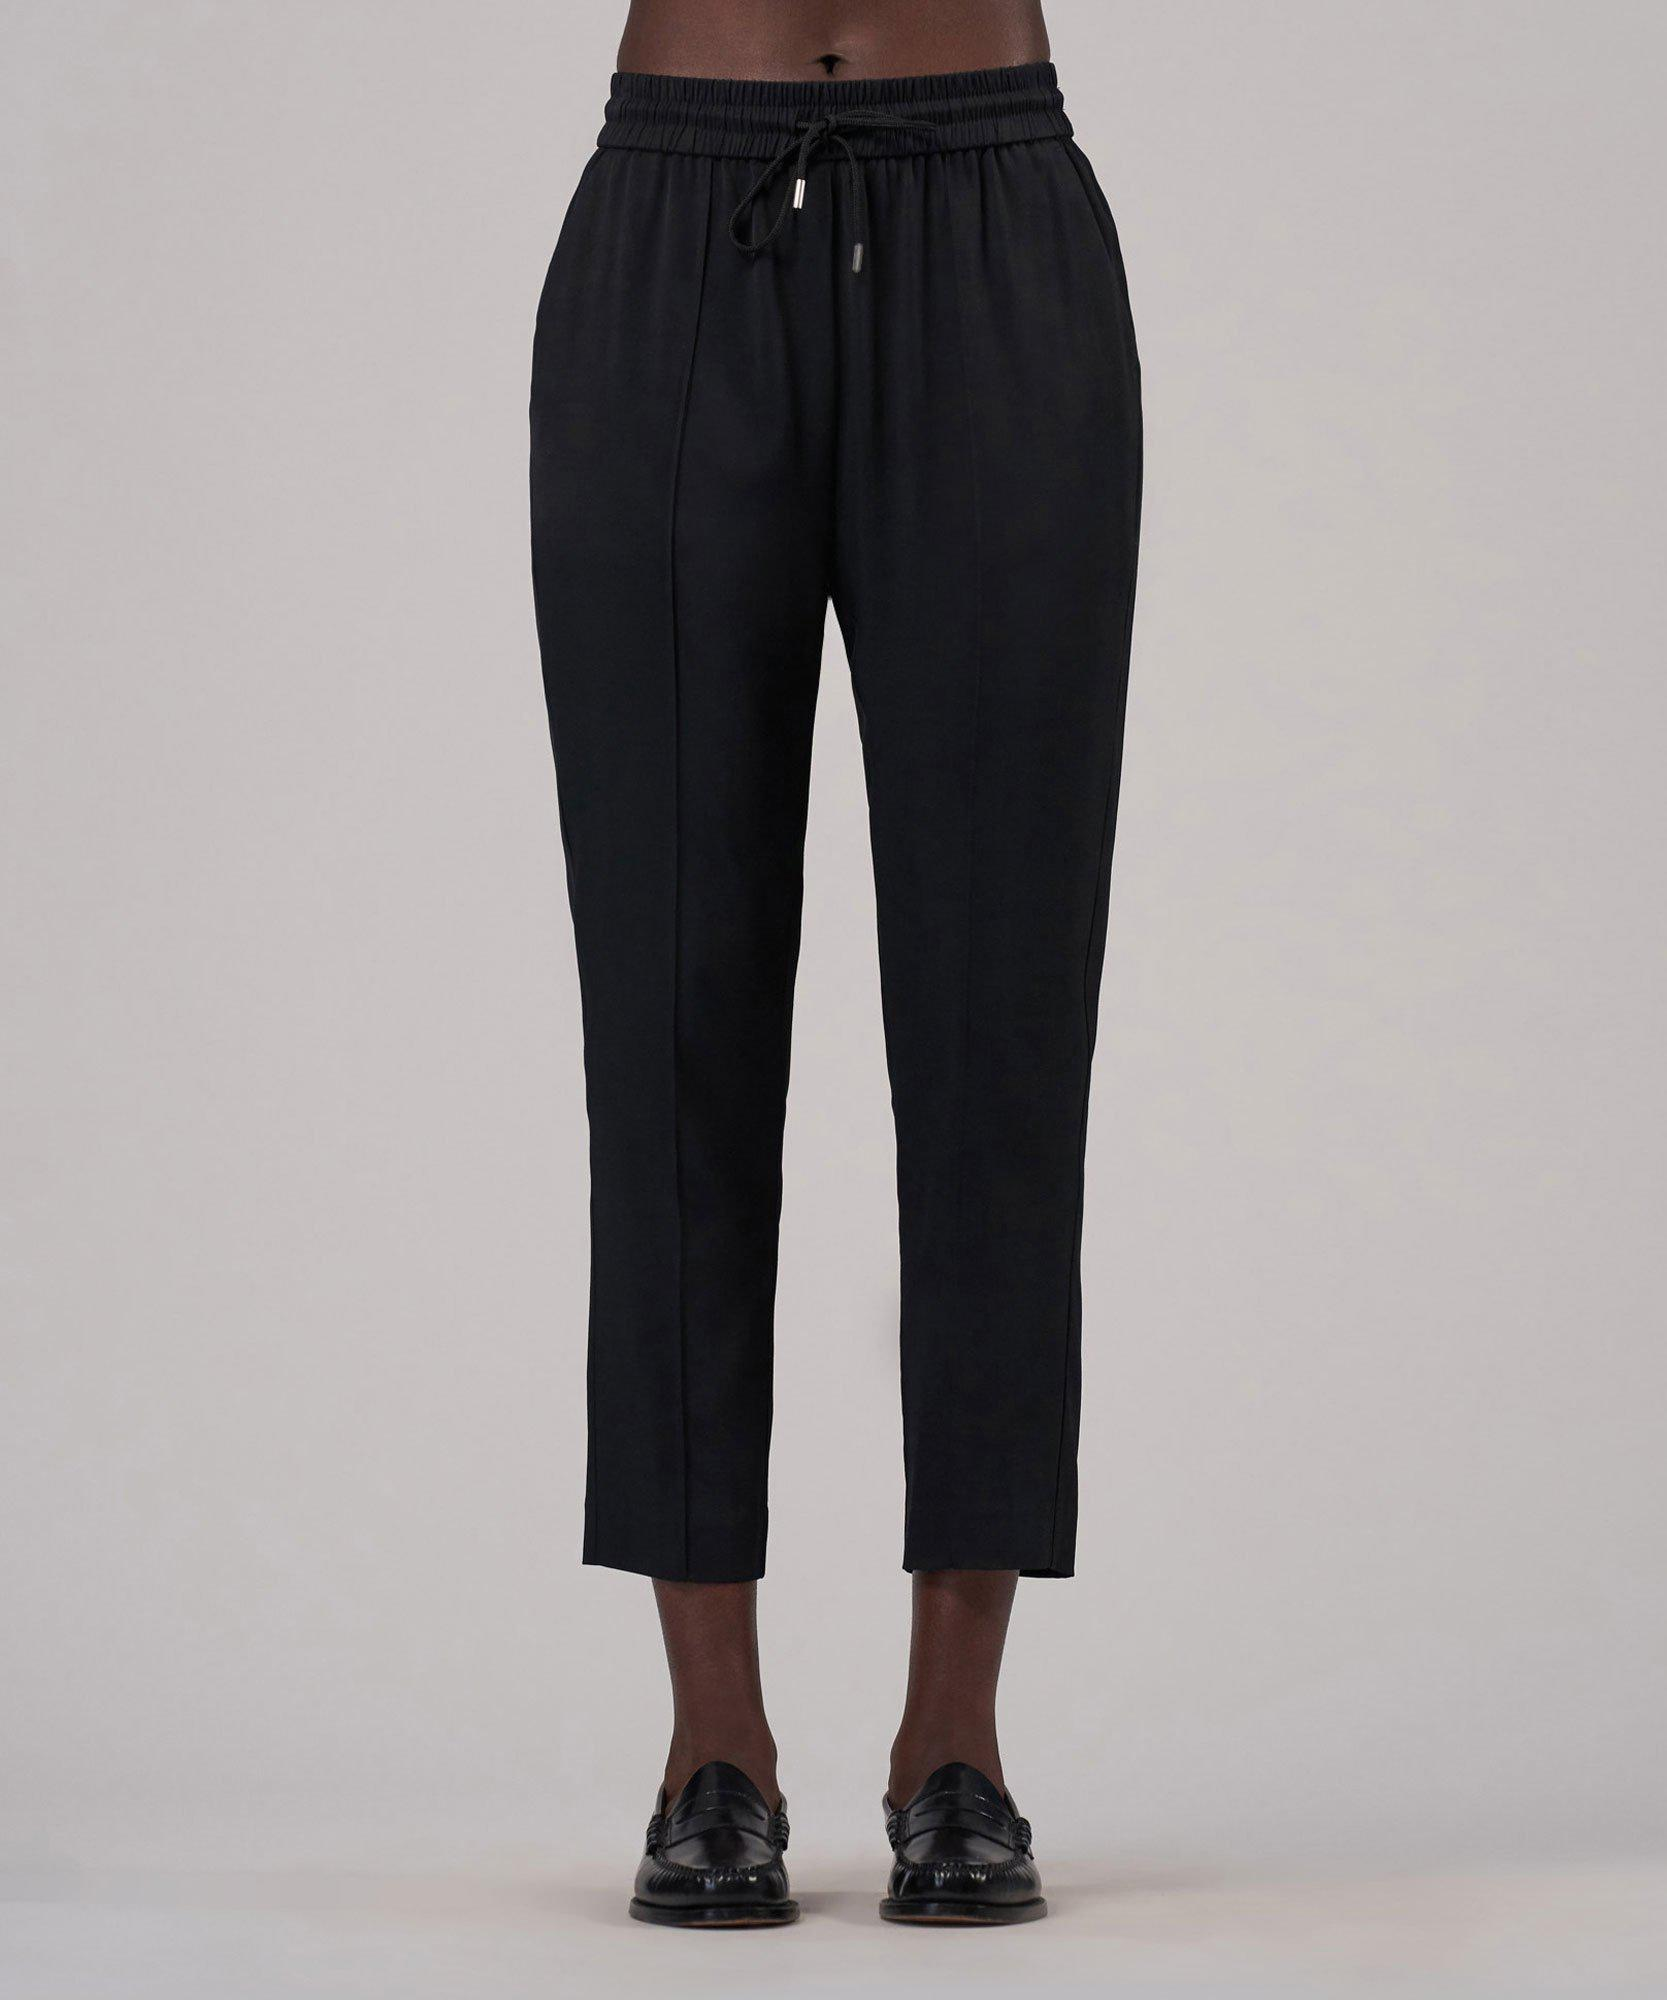 Viscose Twill Cropped Pull-On Pant - Black